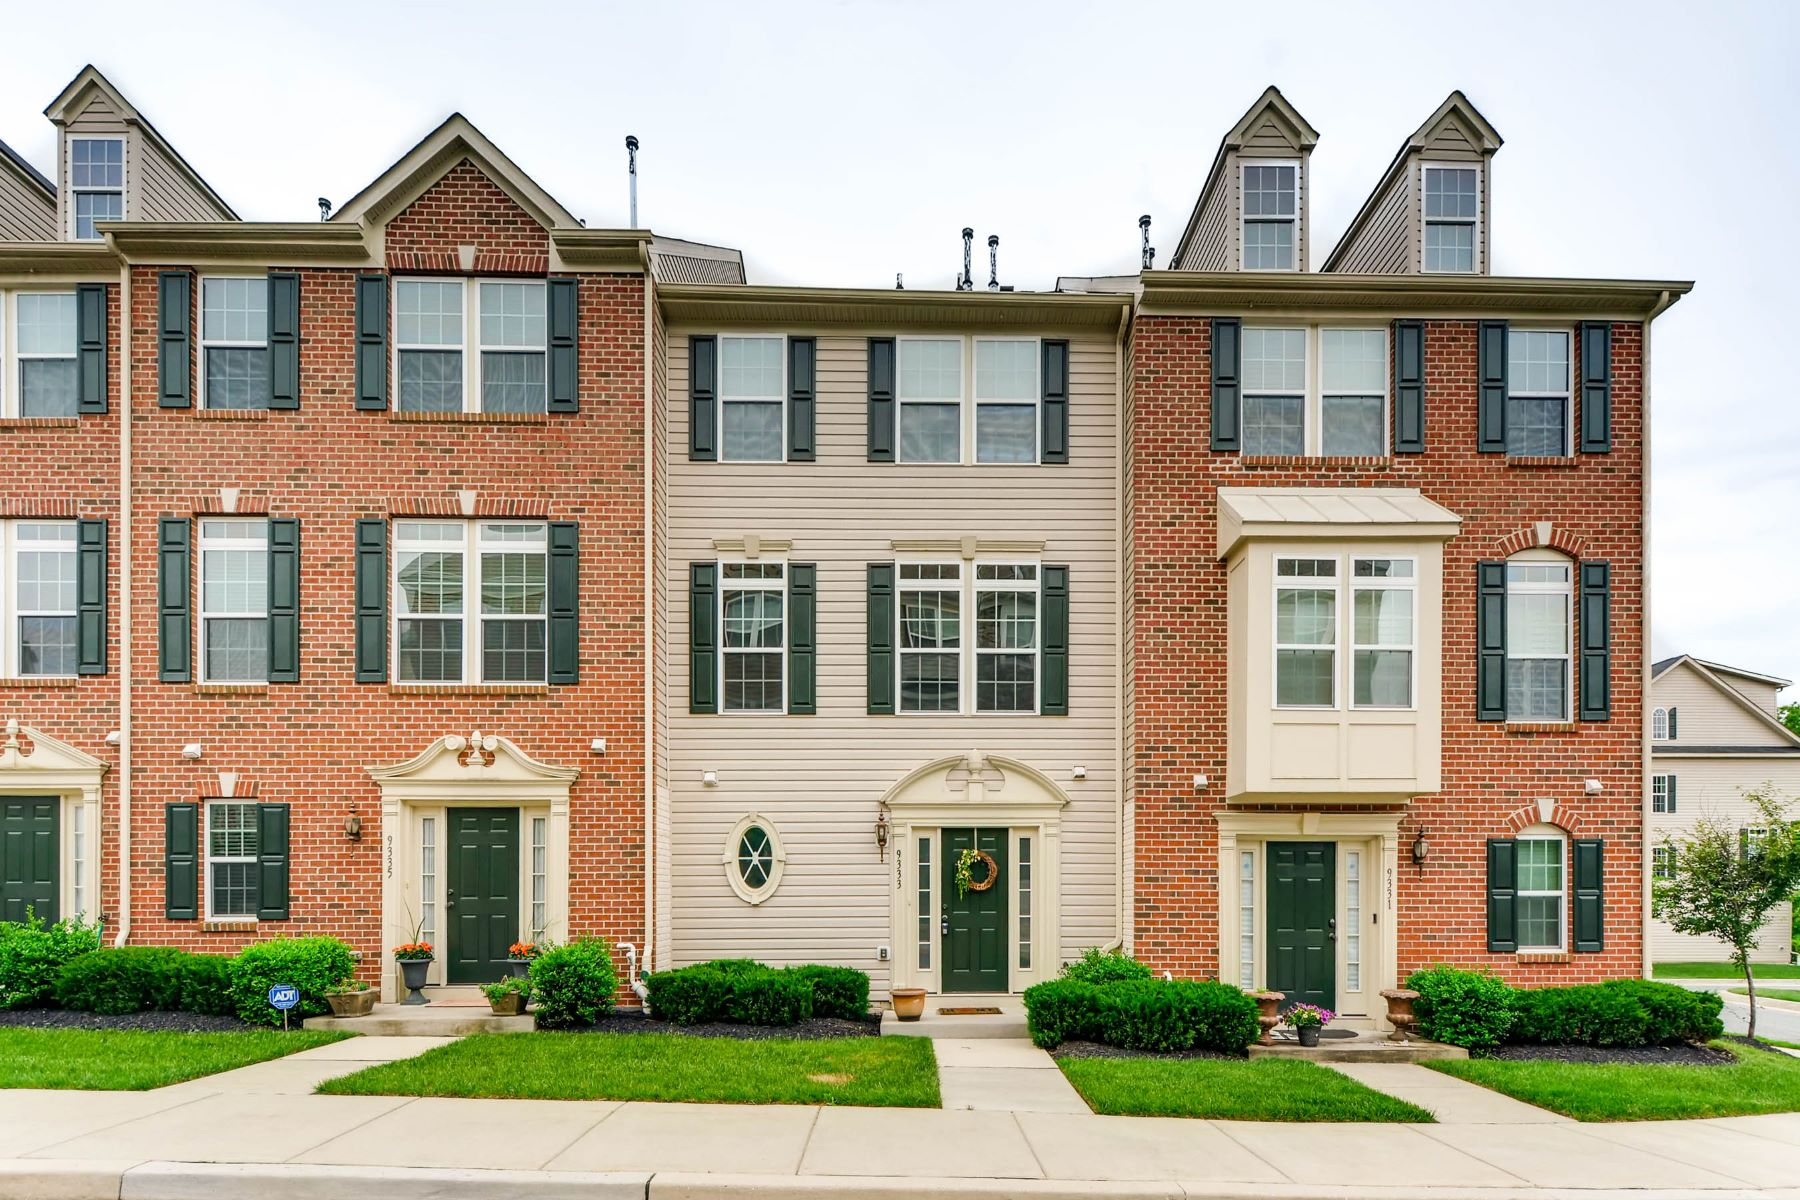 Townhouse for Sale at Red Run Villas III 9333 Paragon Way Owings Mills, Maryland 21117 United States